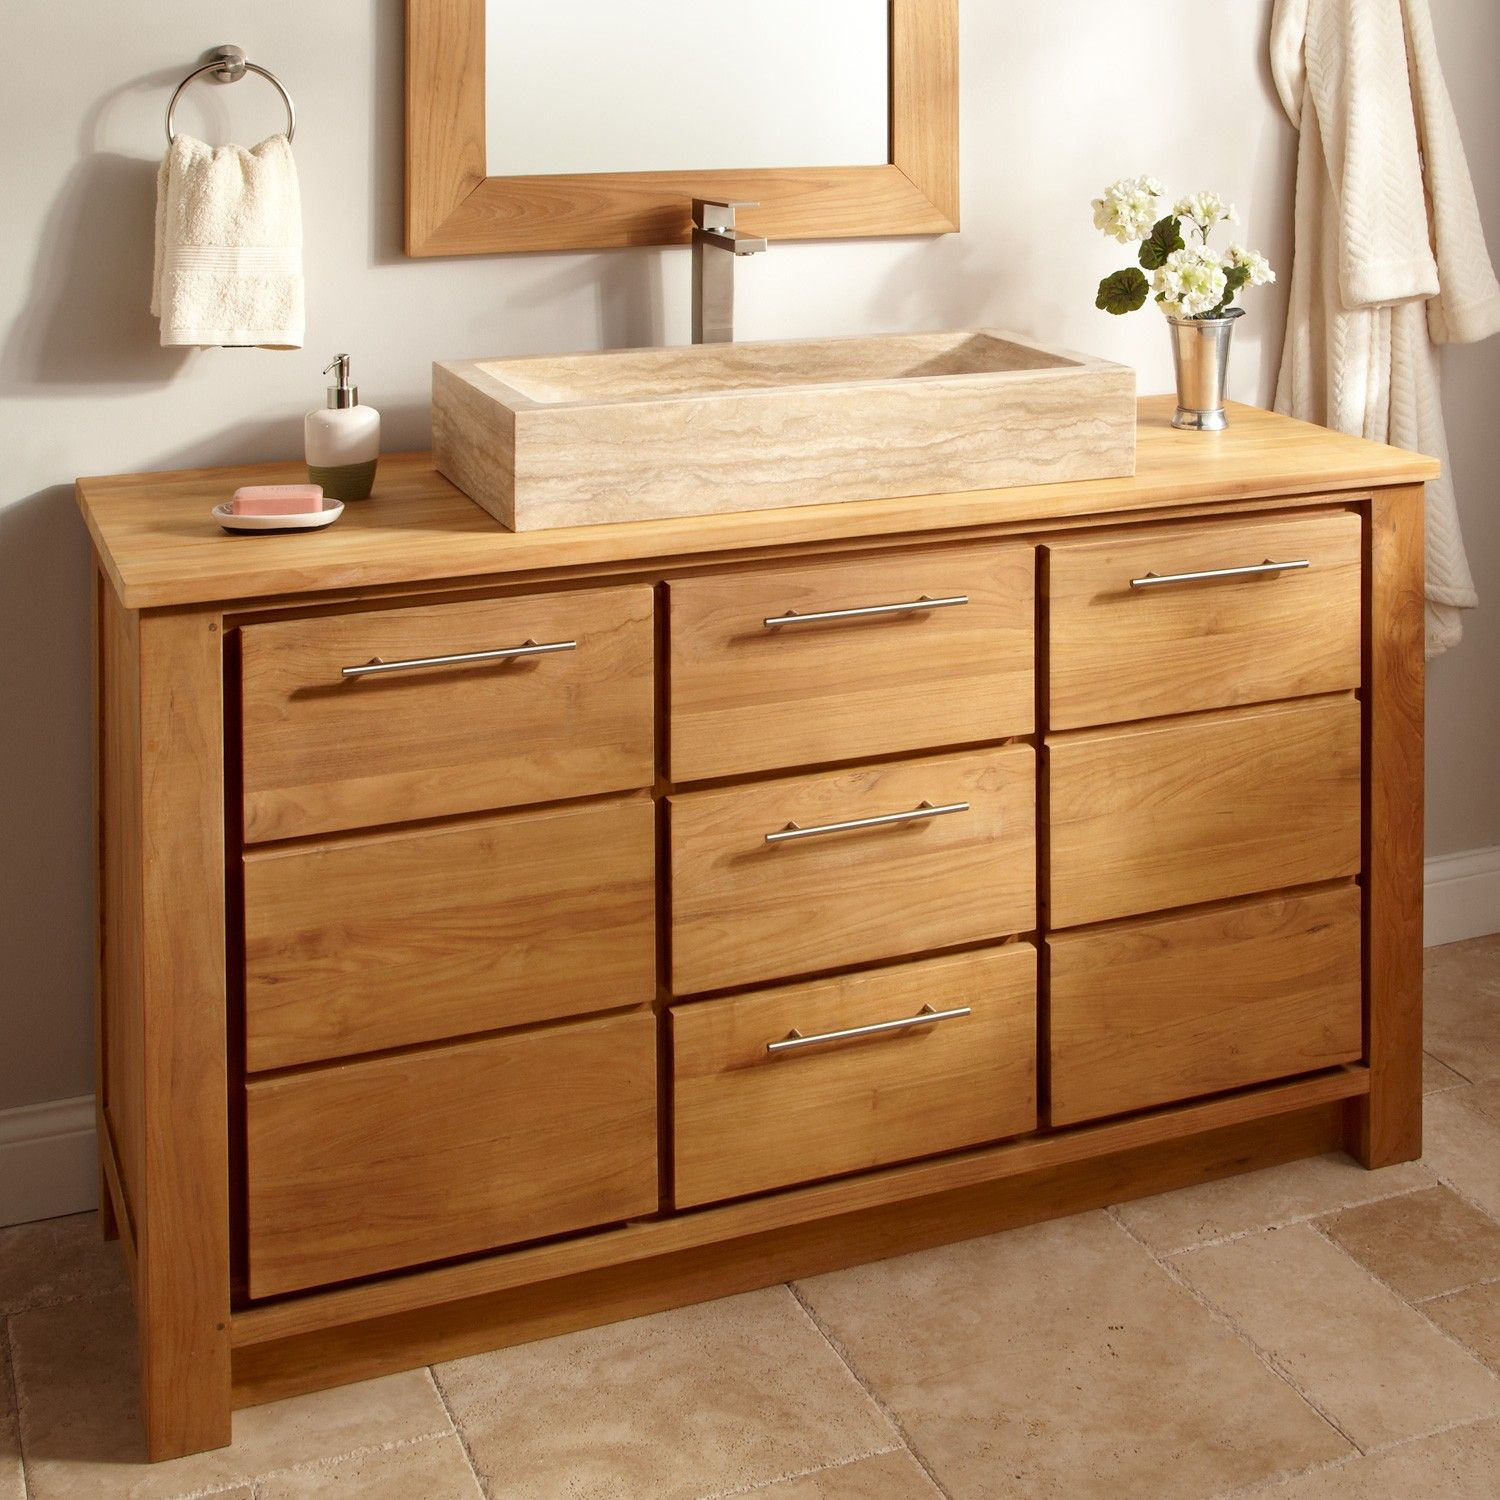 60 venica teak single vessel sink vanity natural teak for Single vanity bathroom ideas